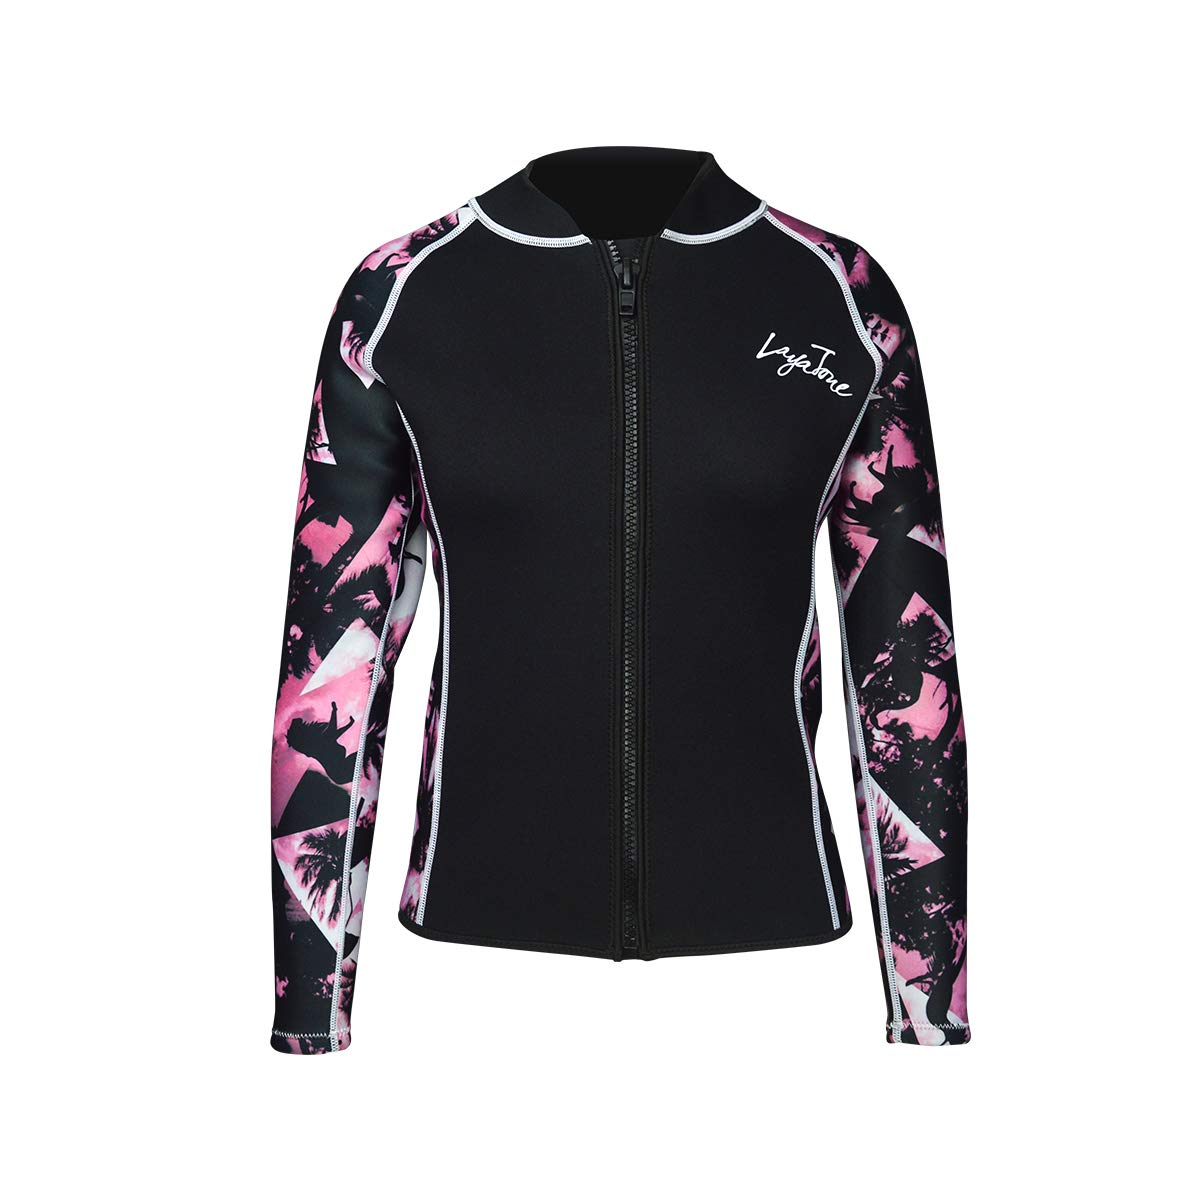 Layatone Wetsuits Top Women Men 3mm Neoprene Jacket Tops Diving Surfing Suit Rash Guard Long Sleeevs Front YKK Zipper Wet Suits Jacket Top Adults (Pink-Lycra Sleeve,L) by Layatone